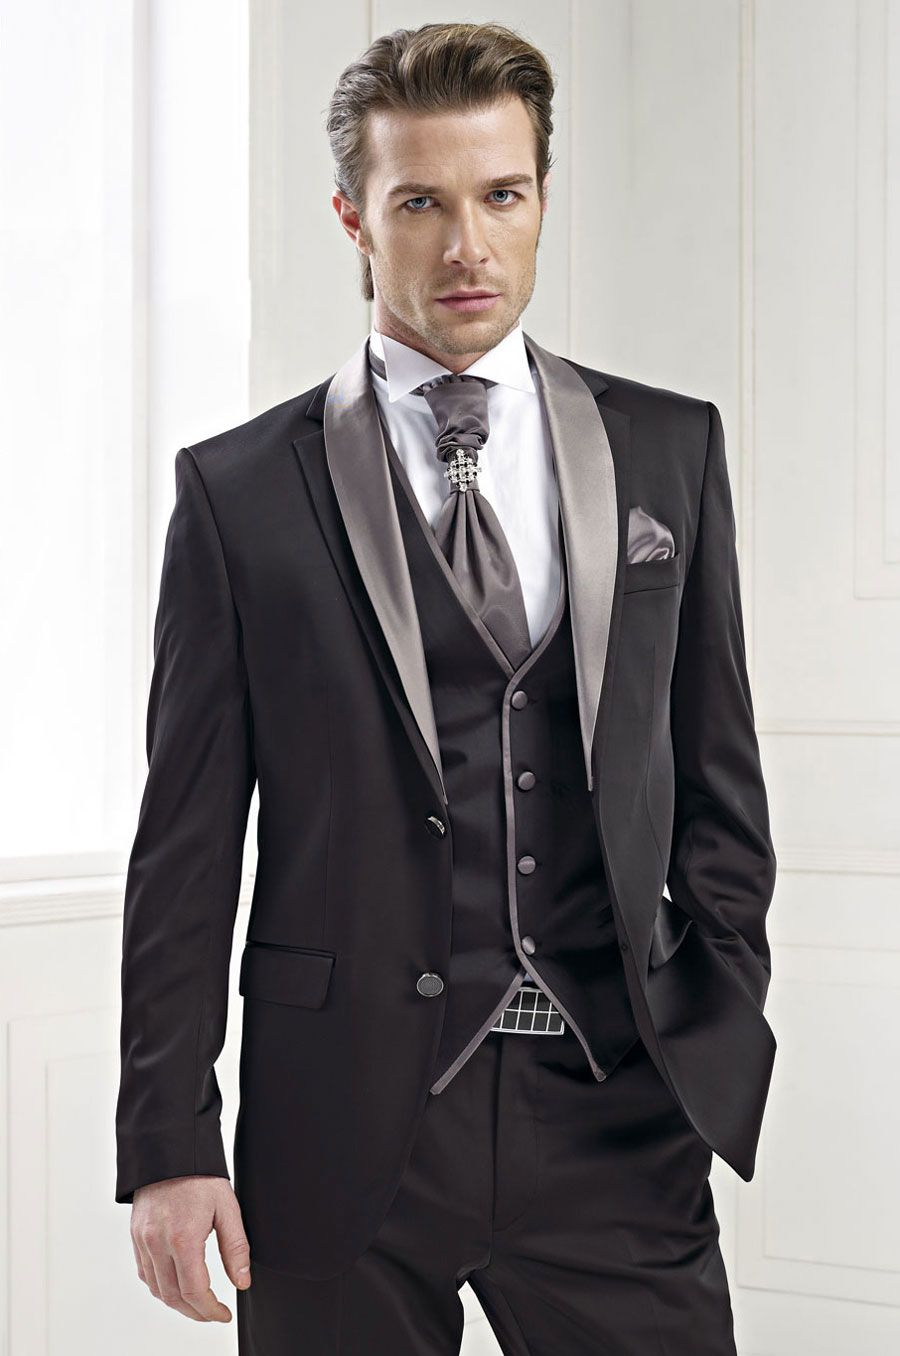 Wedding Suits For Men Inspiration For Male | Vests, Shopping and ...